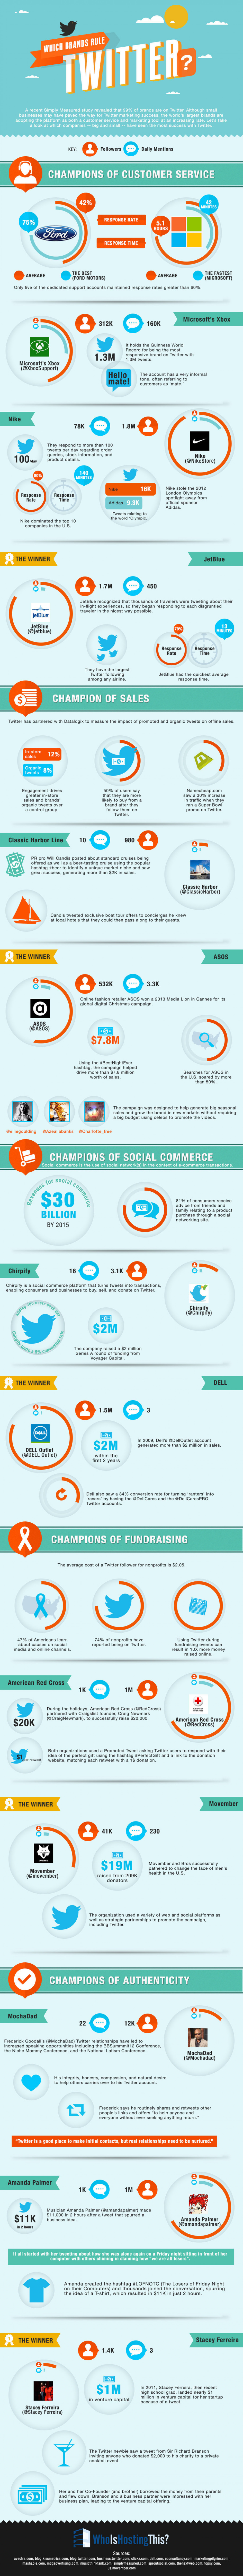 Which Brands Rule Twitter? Infographic